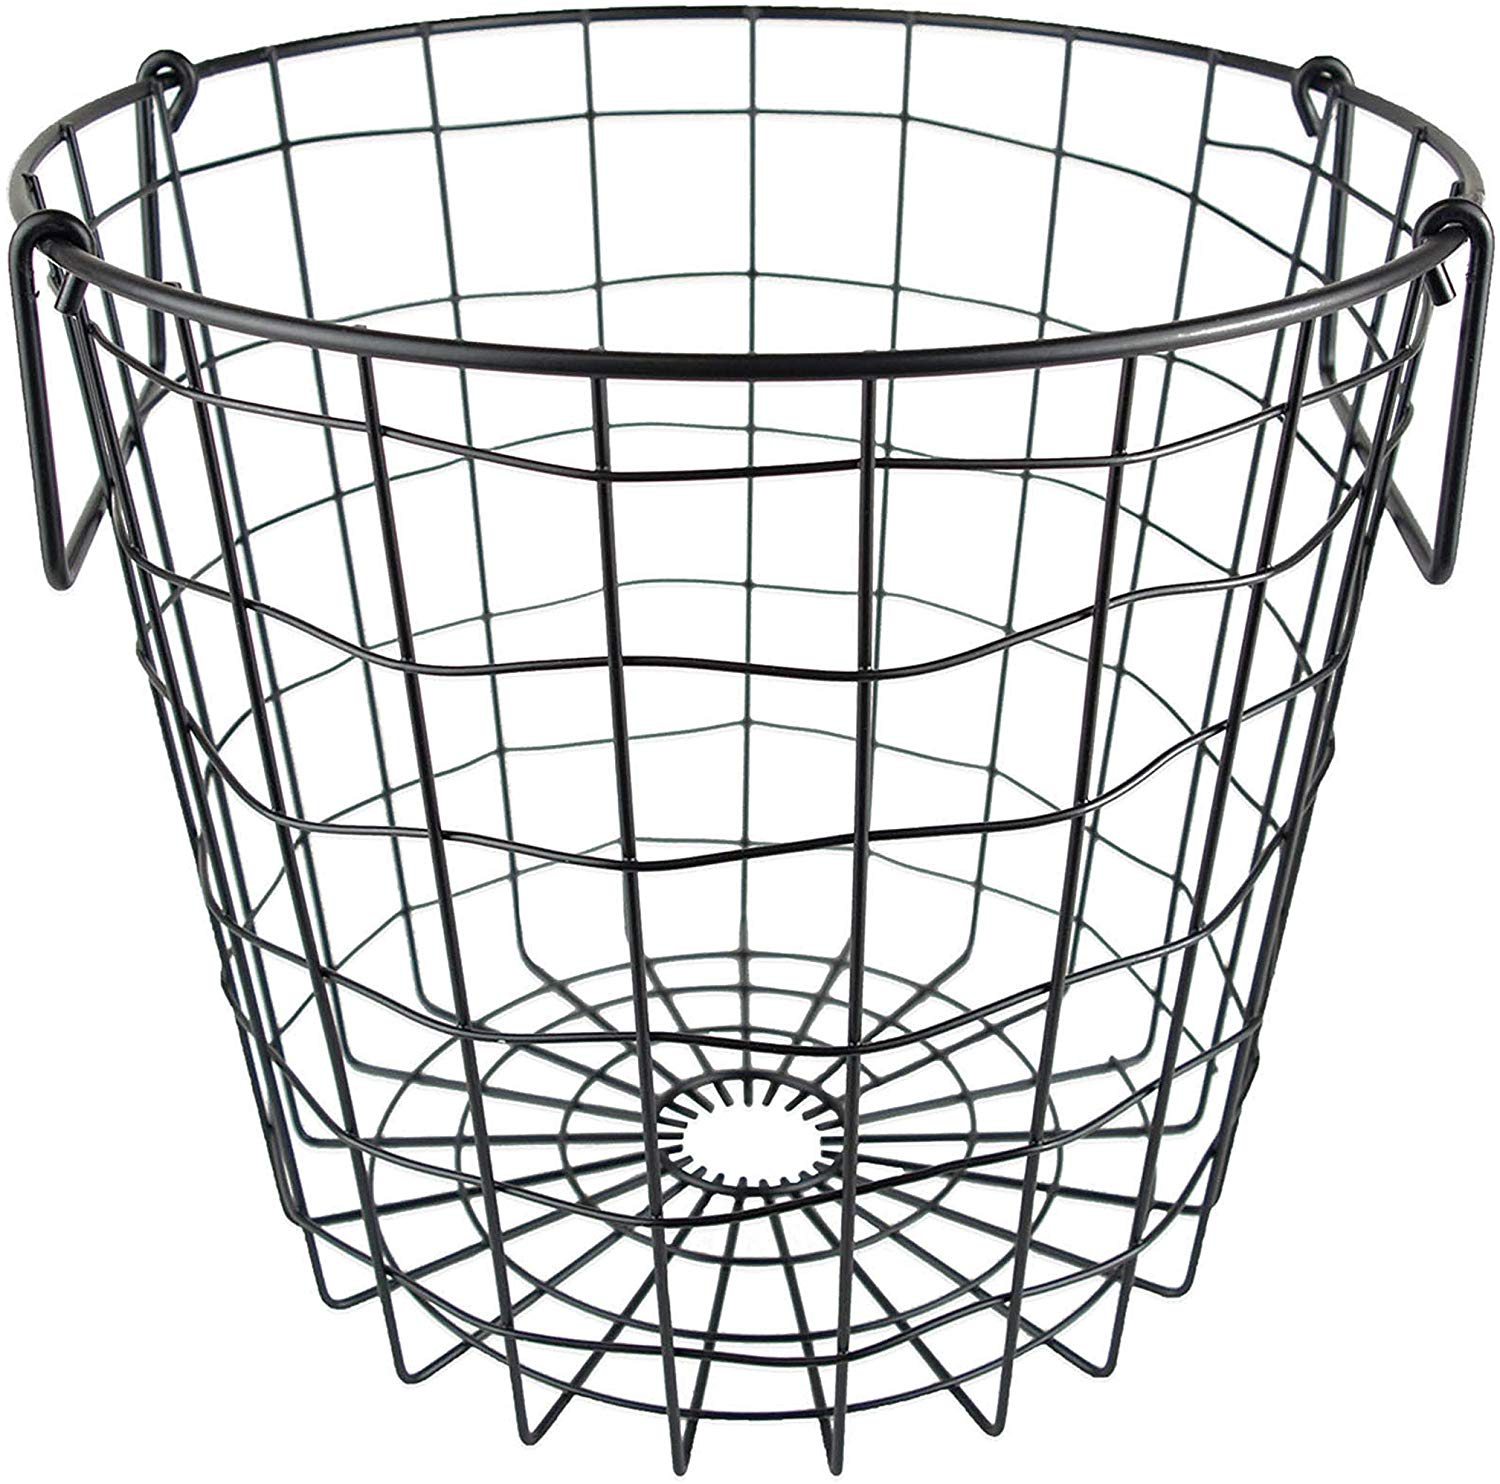 Wall Hanging Wire Baskets extra large 15.25 x 7.5 gray cabinet & wall mount basket | storables